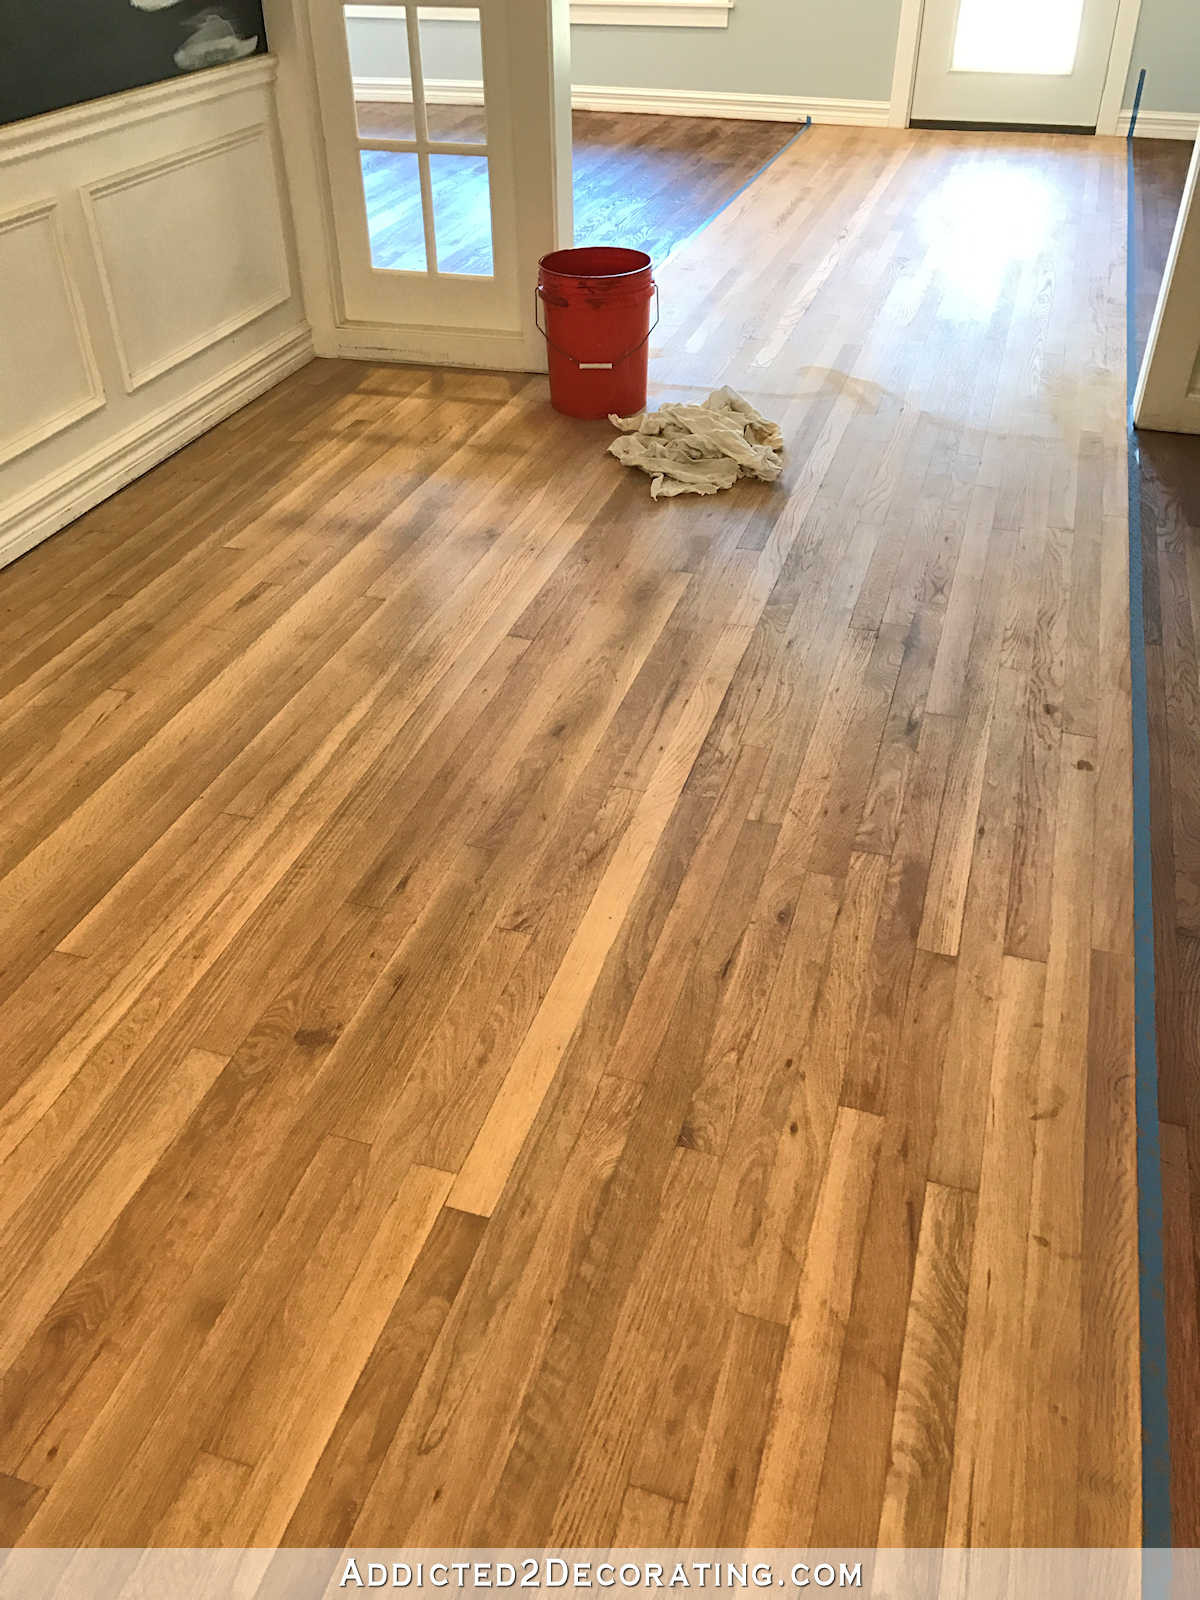 oak hardwood flooring colours of adventures in staining my red oak hardwood floors products process with staining red oak hardwood floors 8 entryway and music room wood conditioner